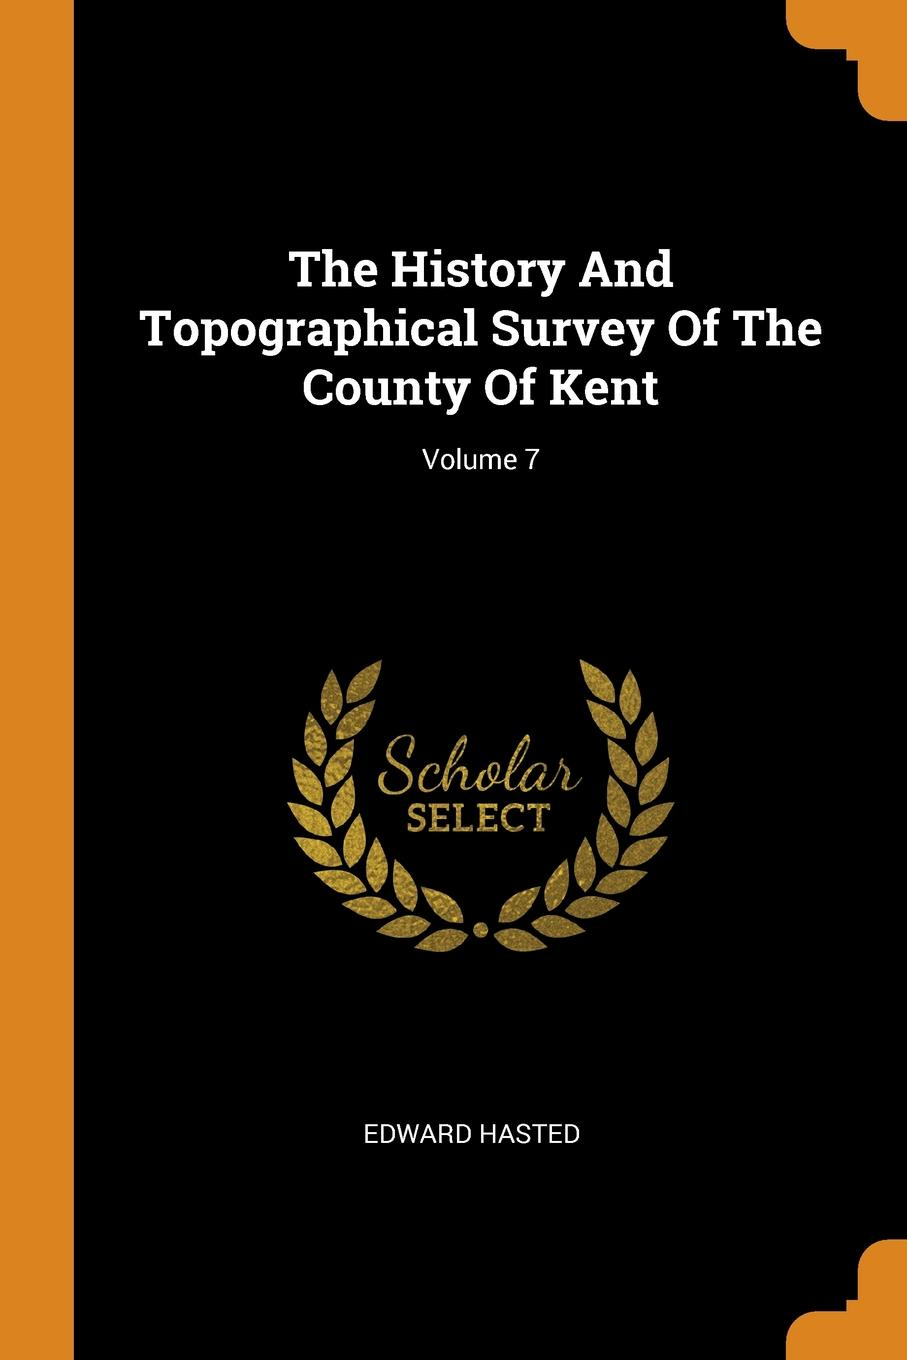 Edward Hasted The History And Topographical Survey Of The County Of Kent; Volume 7 edward hasted the history and topographical survey of the county of kent volume xii